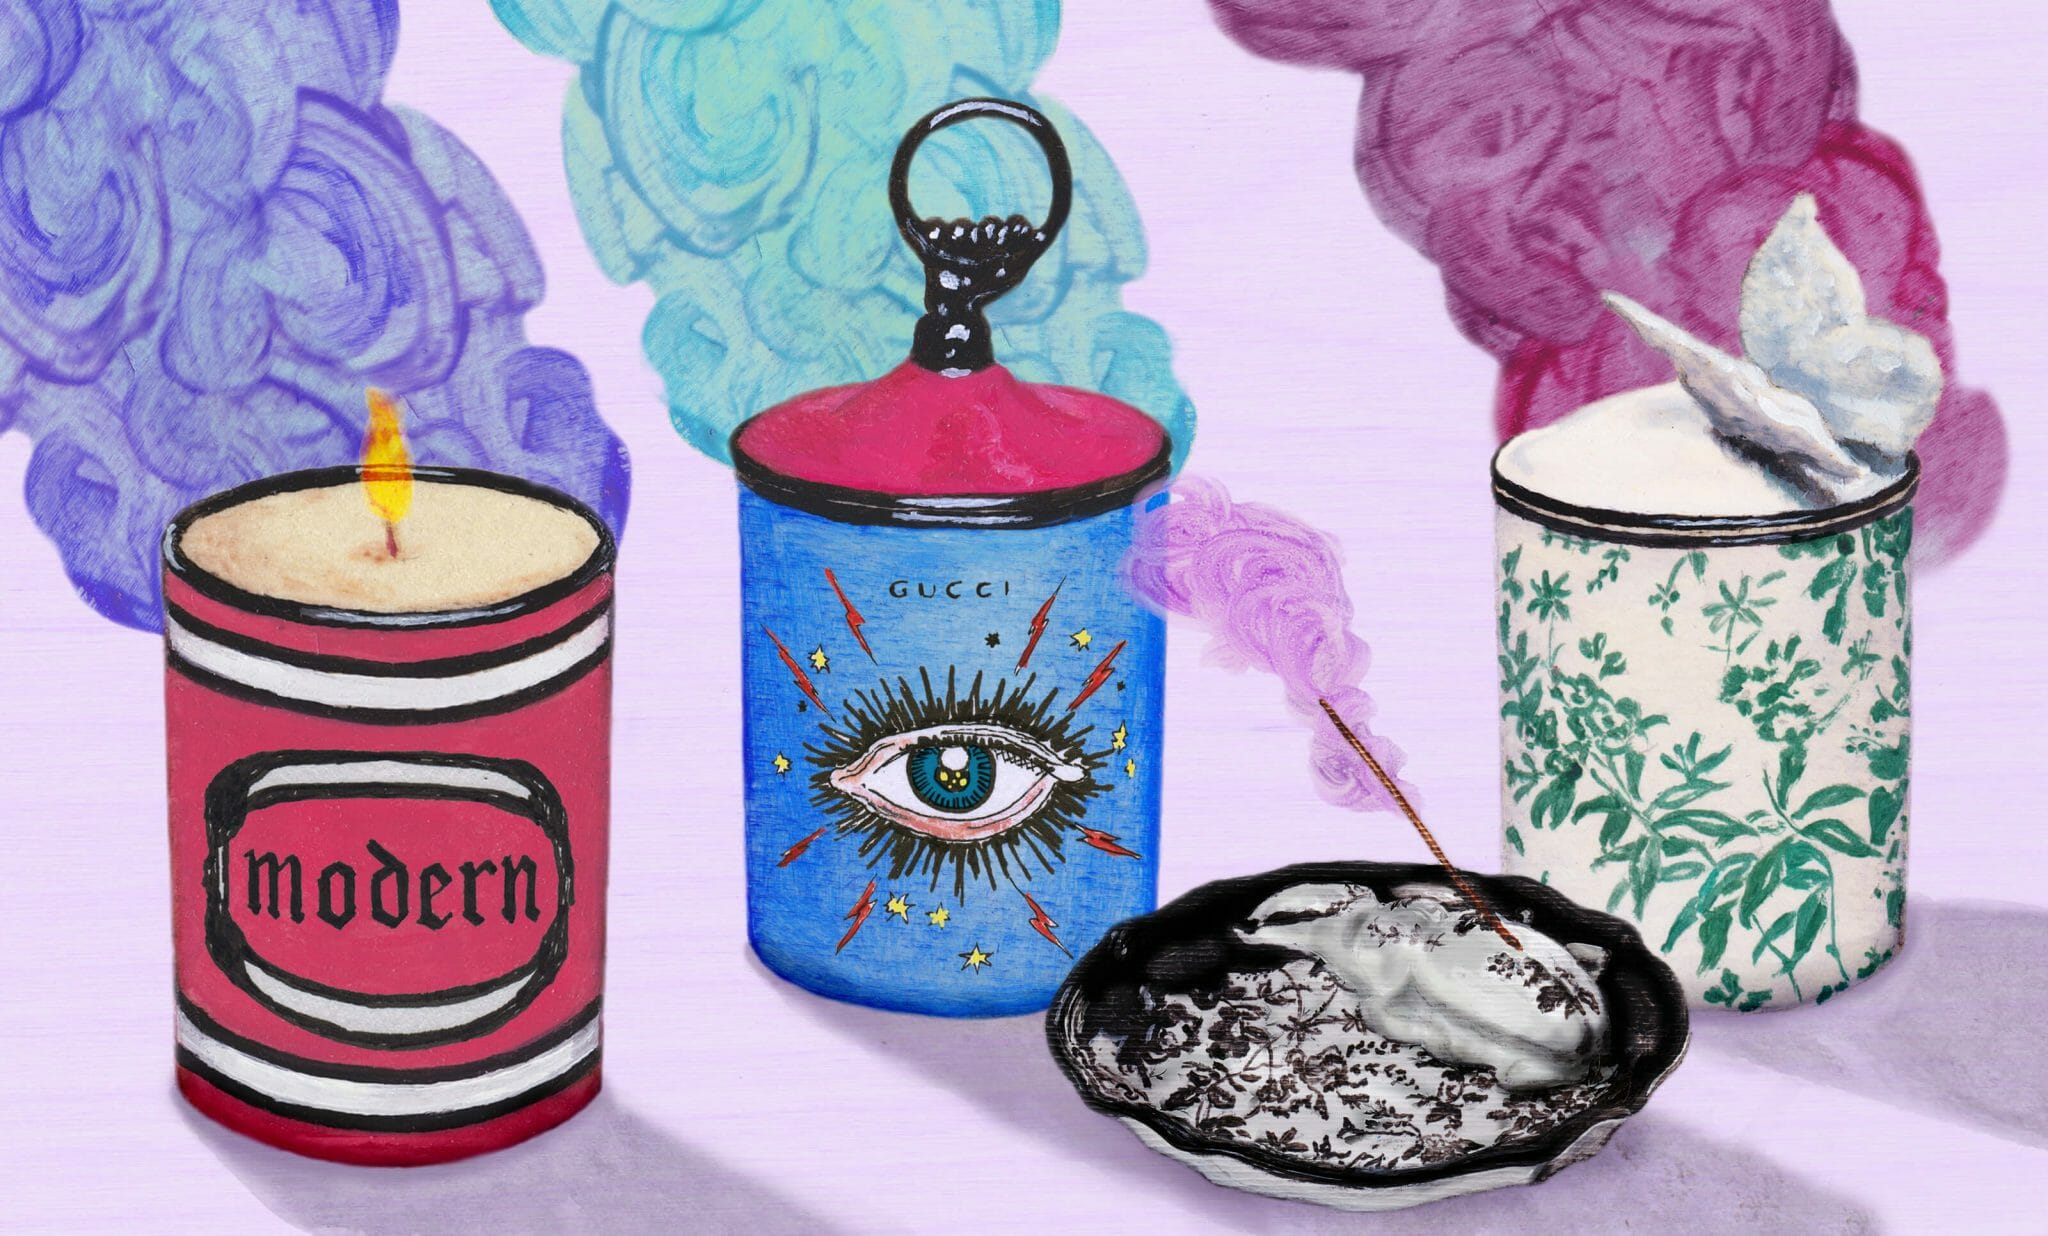 Crafted from porcelain and produced by Richard Ginori, a renowned Florentine company founded in 1735, the Gucci Décor scented candles and incense burners are adorned with the house's motifs. Gucci's Herbarium print, inspired by a vintage fabric, also appears on porcelain mugs and scented candles.